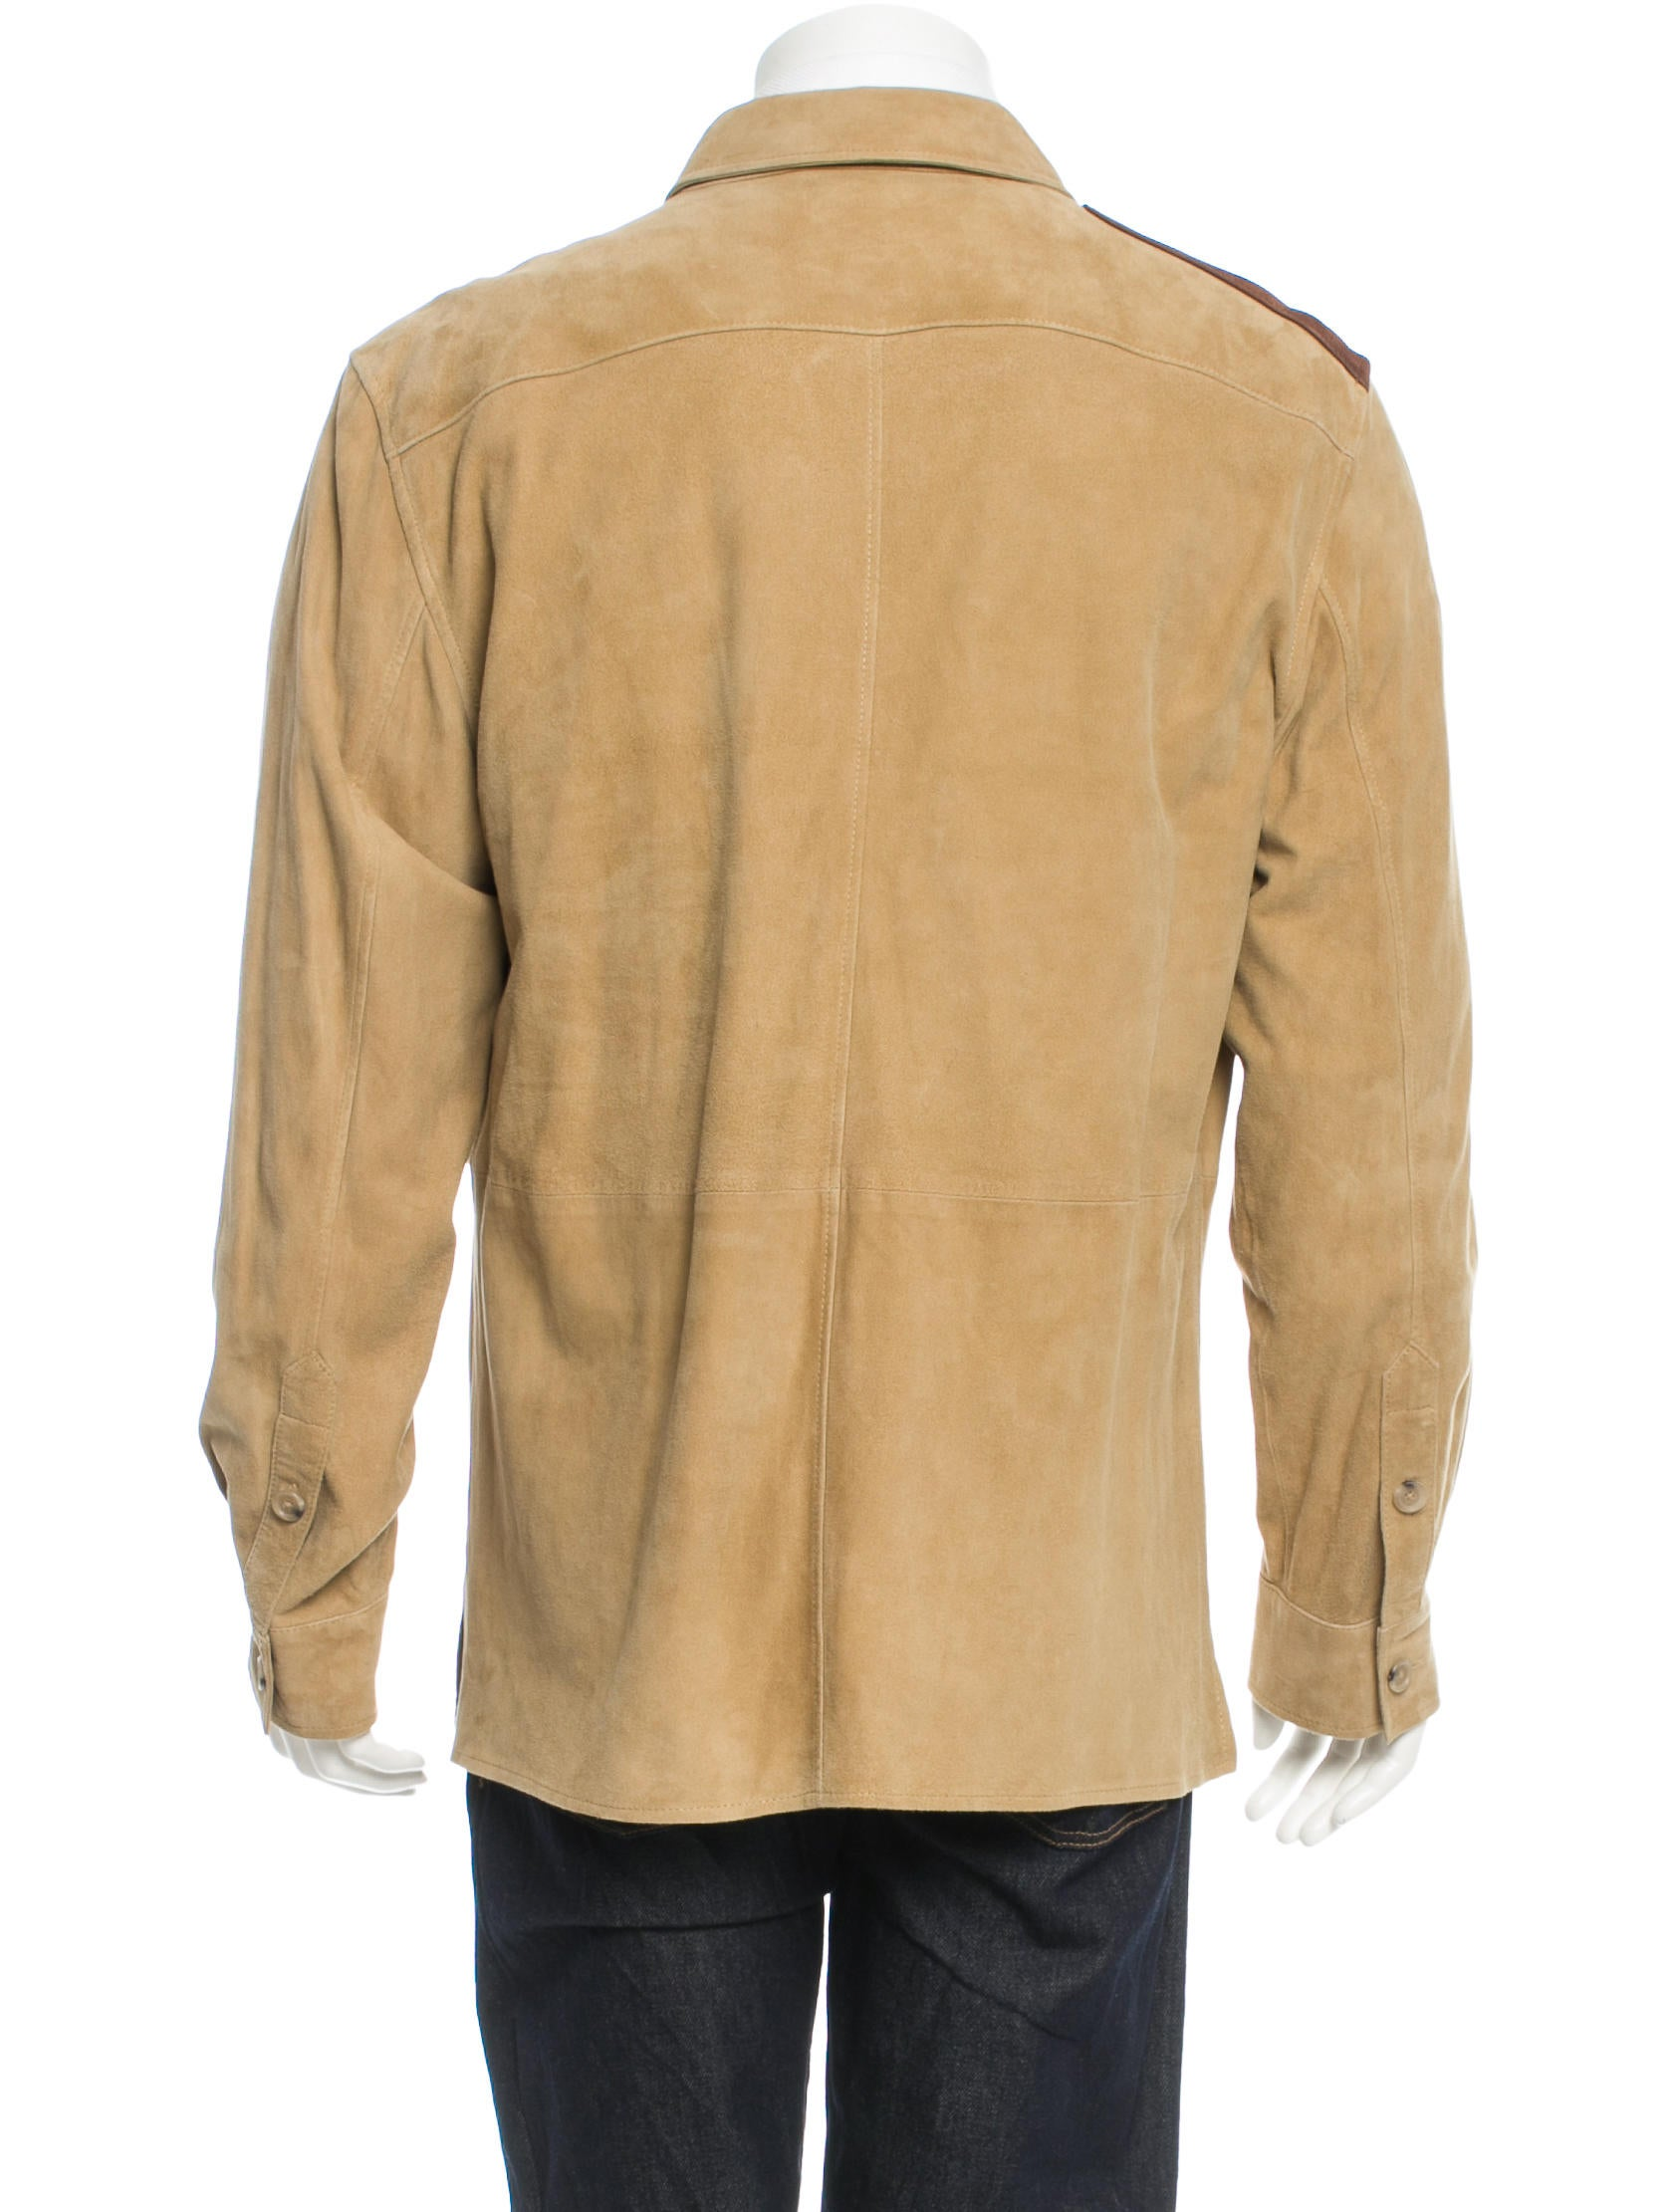 Polo ralph lauren suede shirt jacket w tags clothing for Polo shirt with jacket